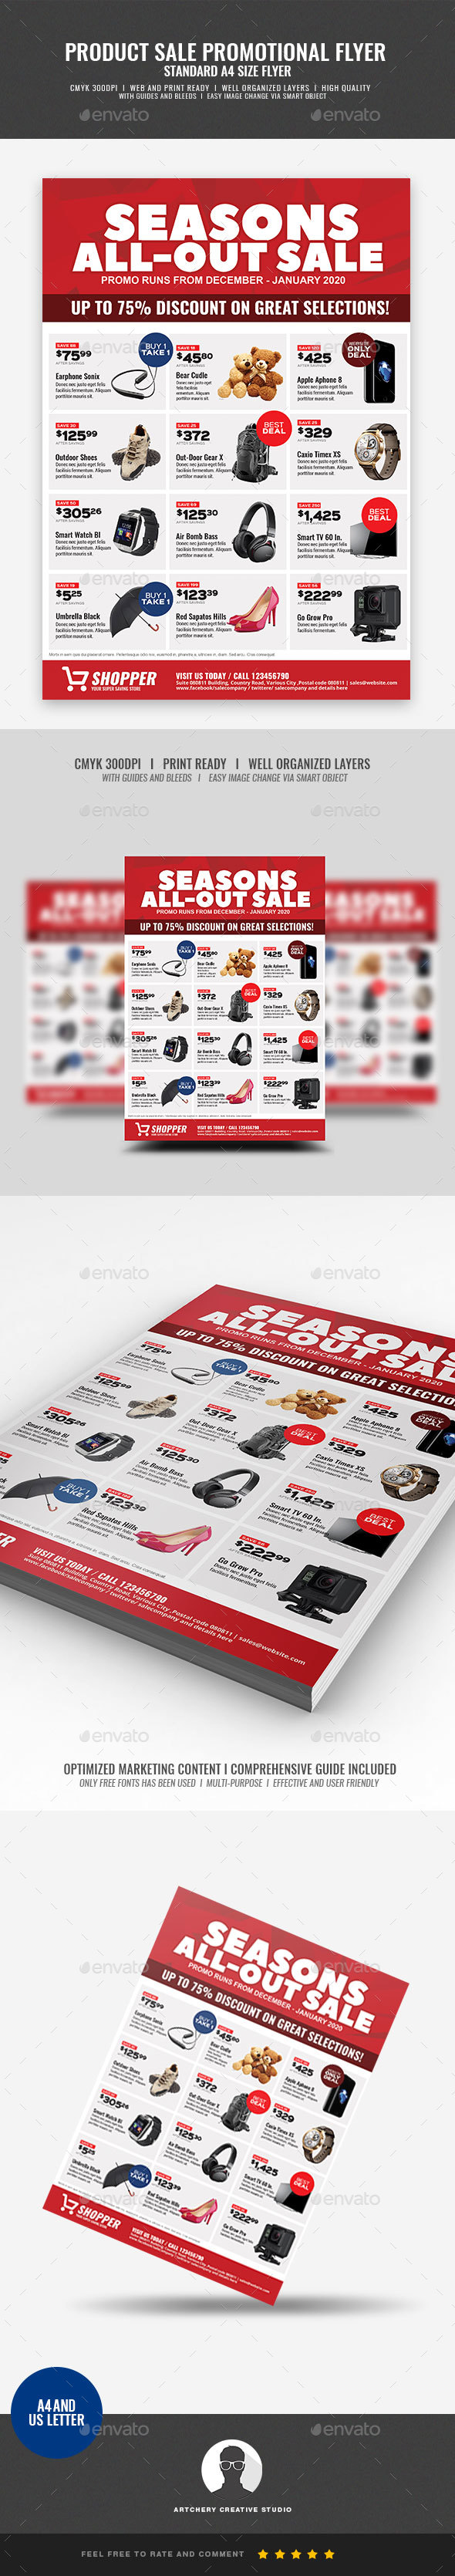 GraphicRiver Product Promotional Sale Flyer 21072236